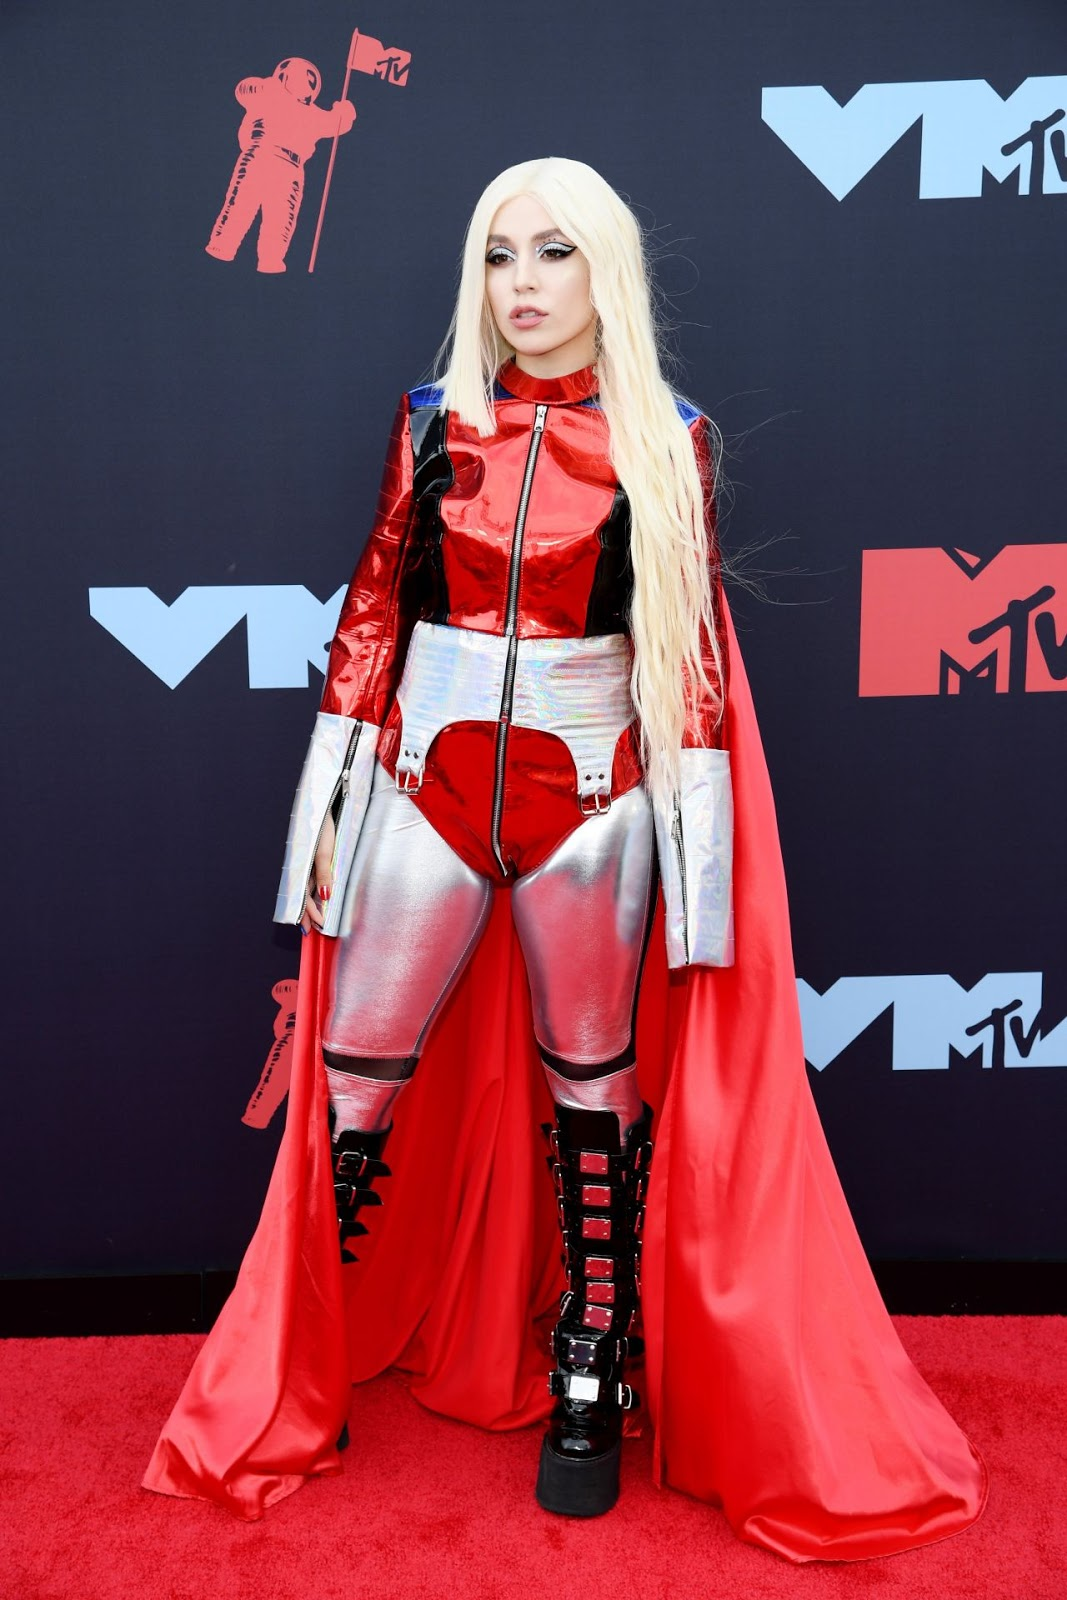 Ava Max turns superhero for the 2019 MTV VMAs